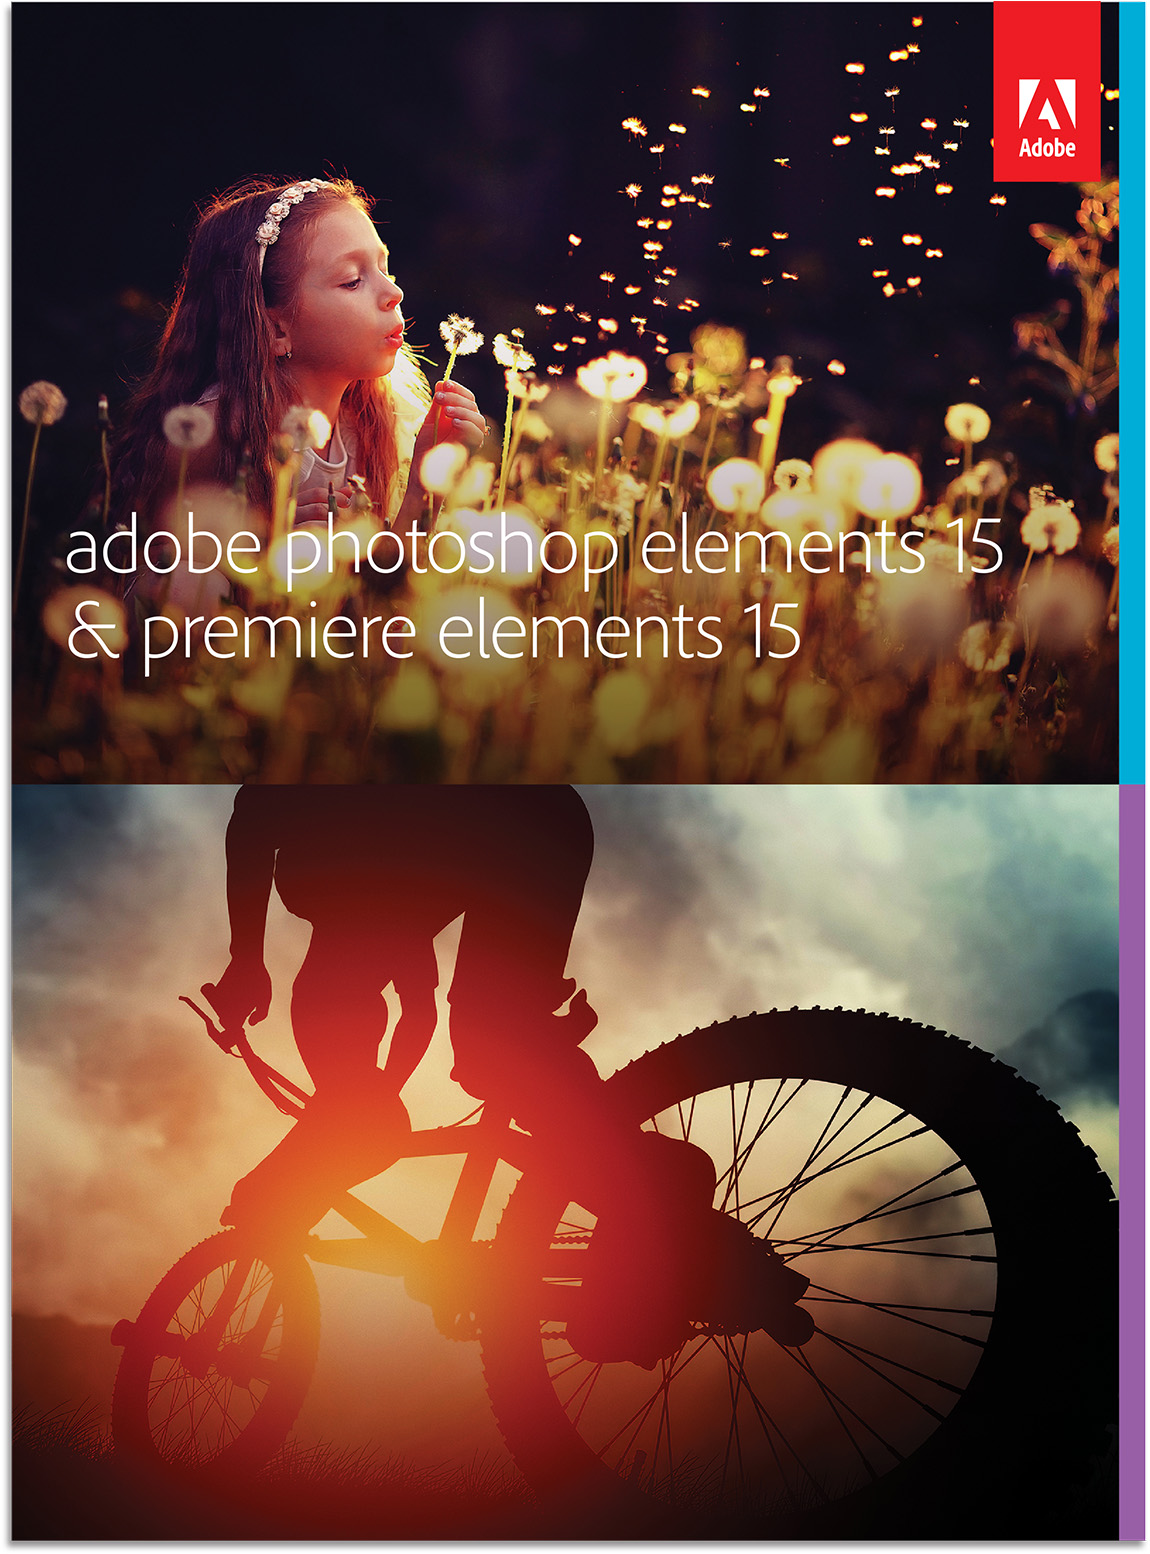 Adobe Photoshop and Premiere Elements 15 Deal